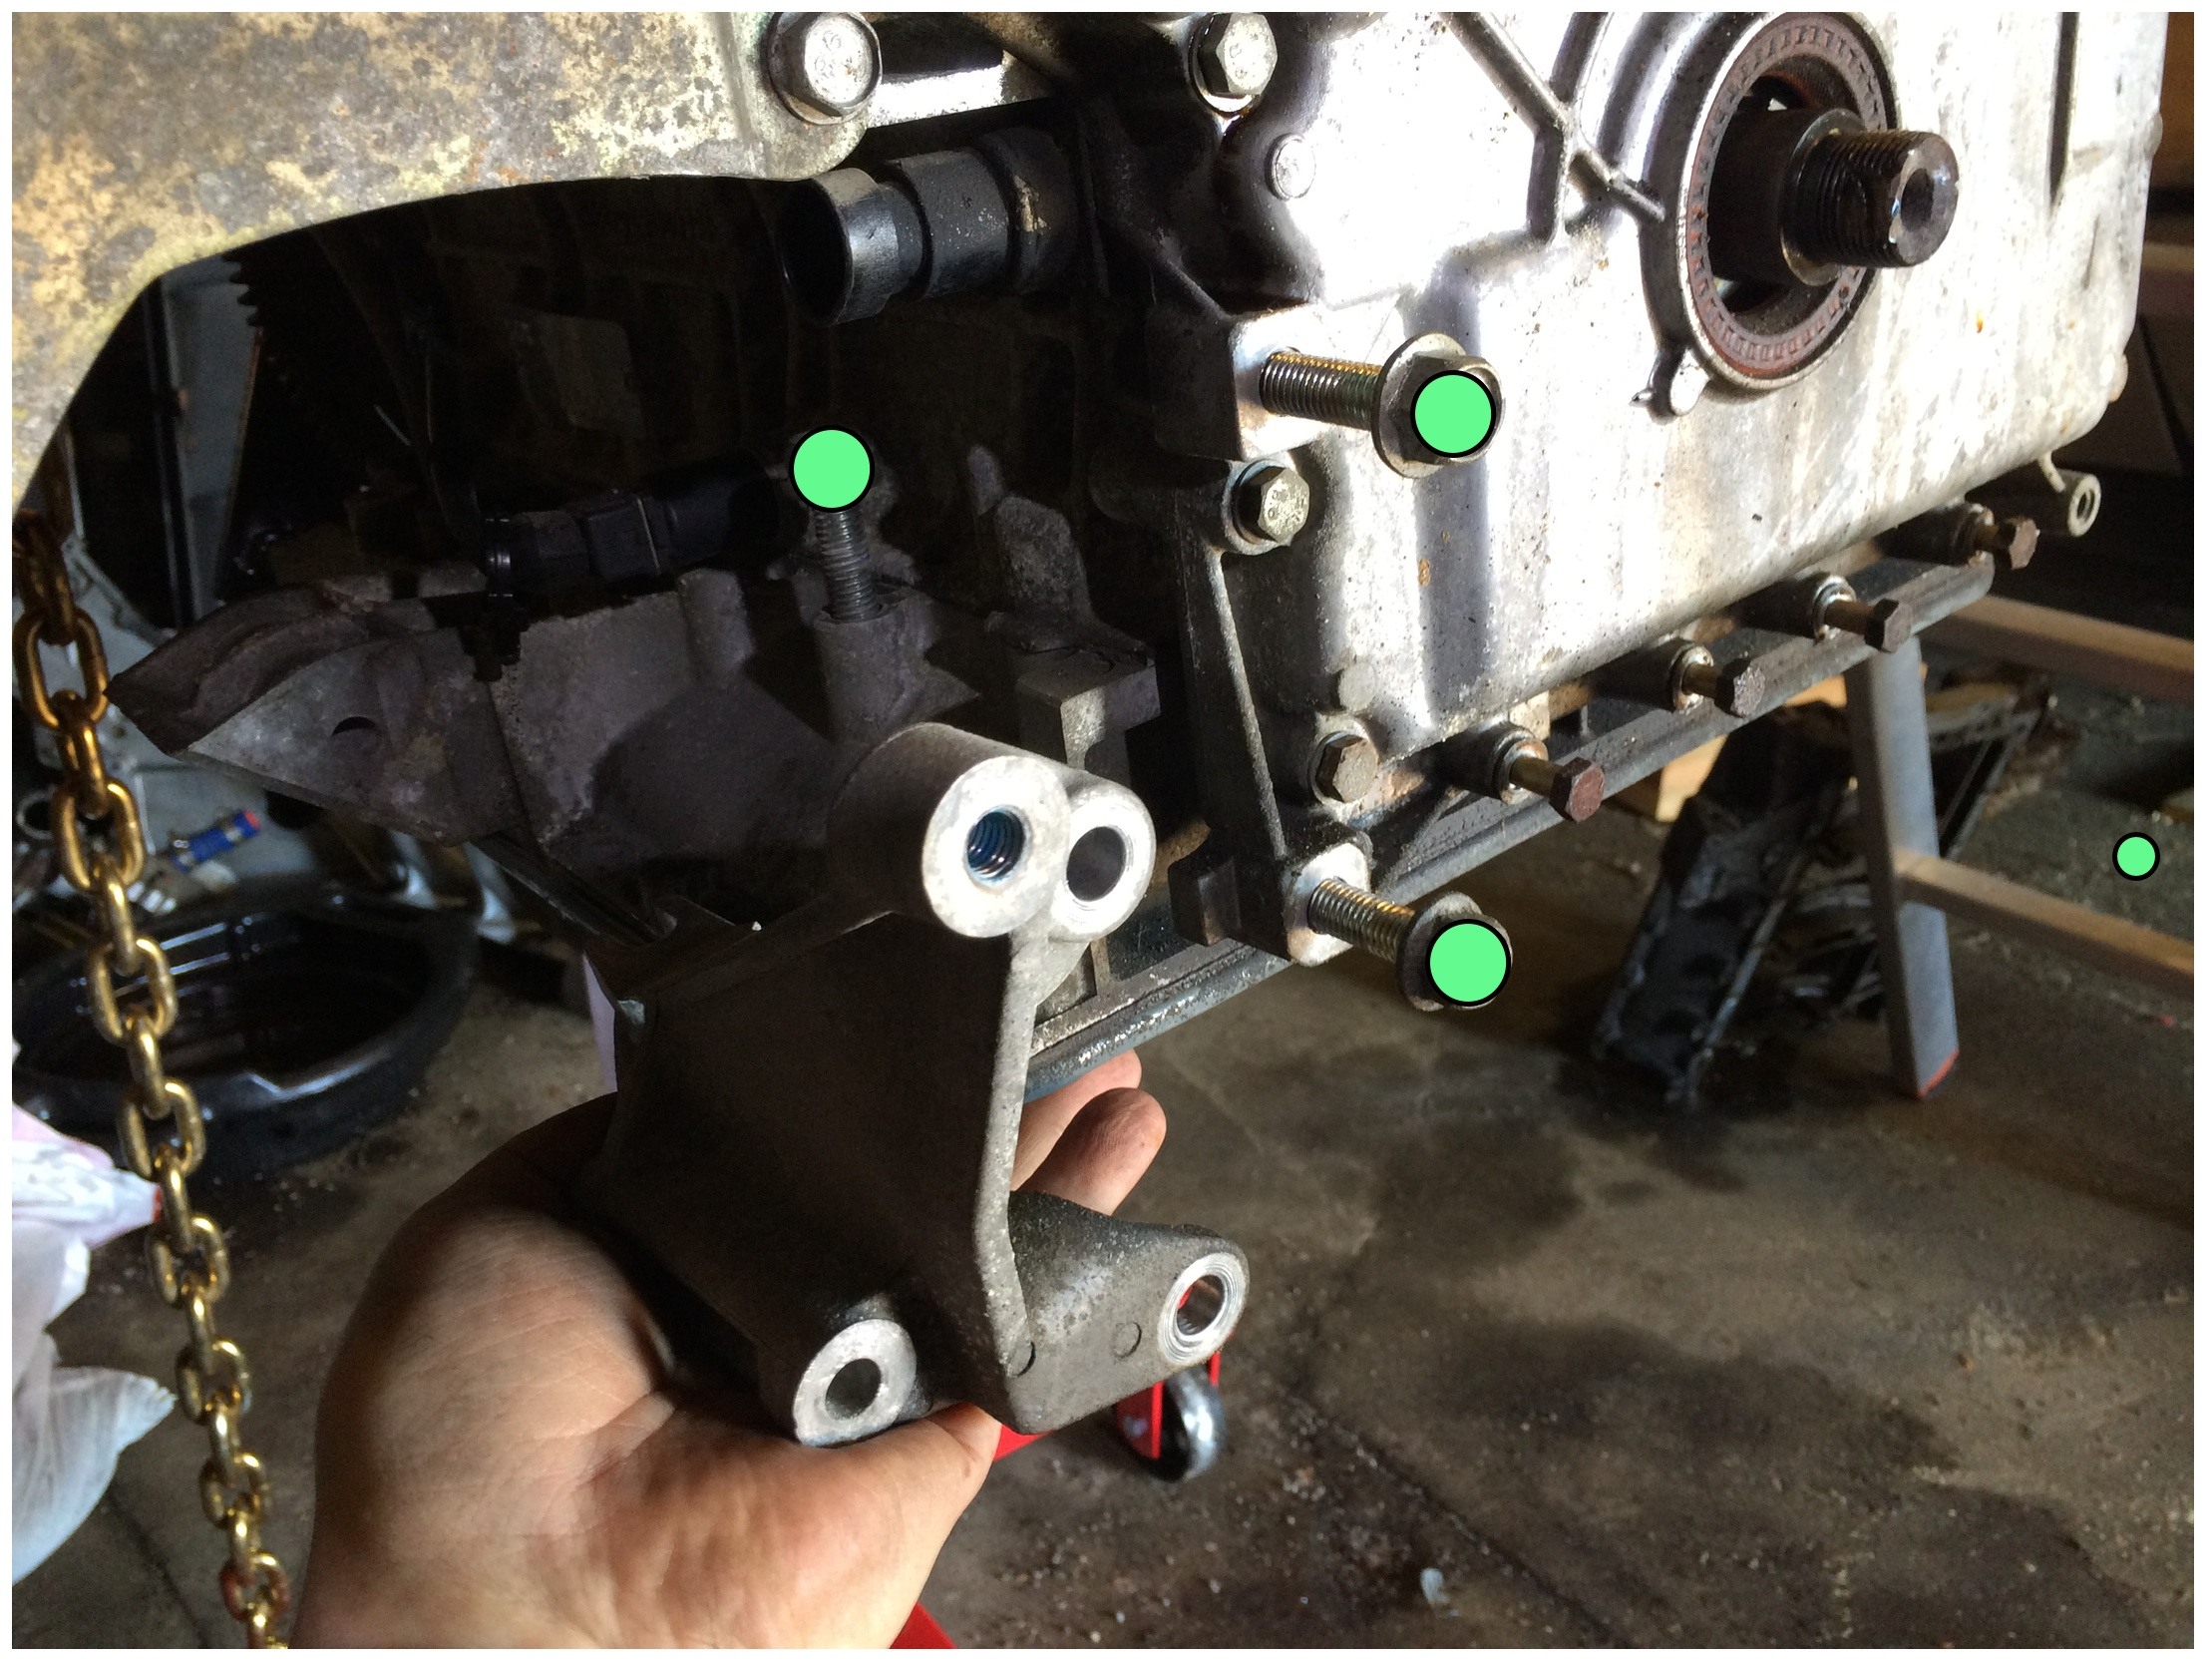 Three bolts (green, 15mm socket) hold a bracket to the bottom of the engine.